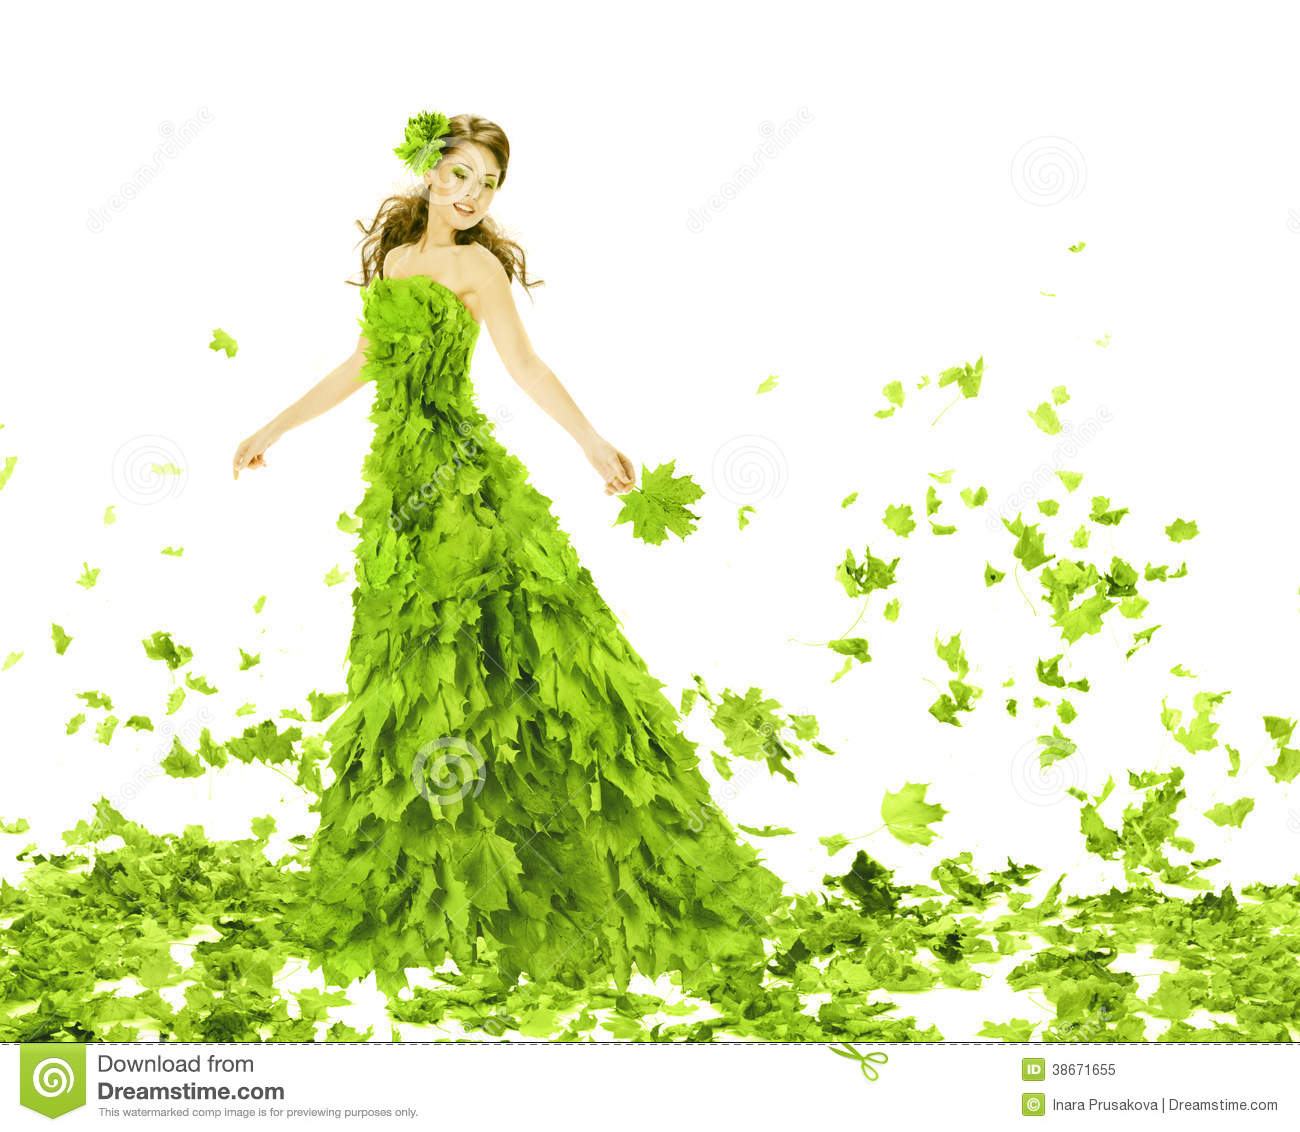 Fantasy Beauty Woman In Leaves Dress Royalty Free Stock Photo   Image